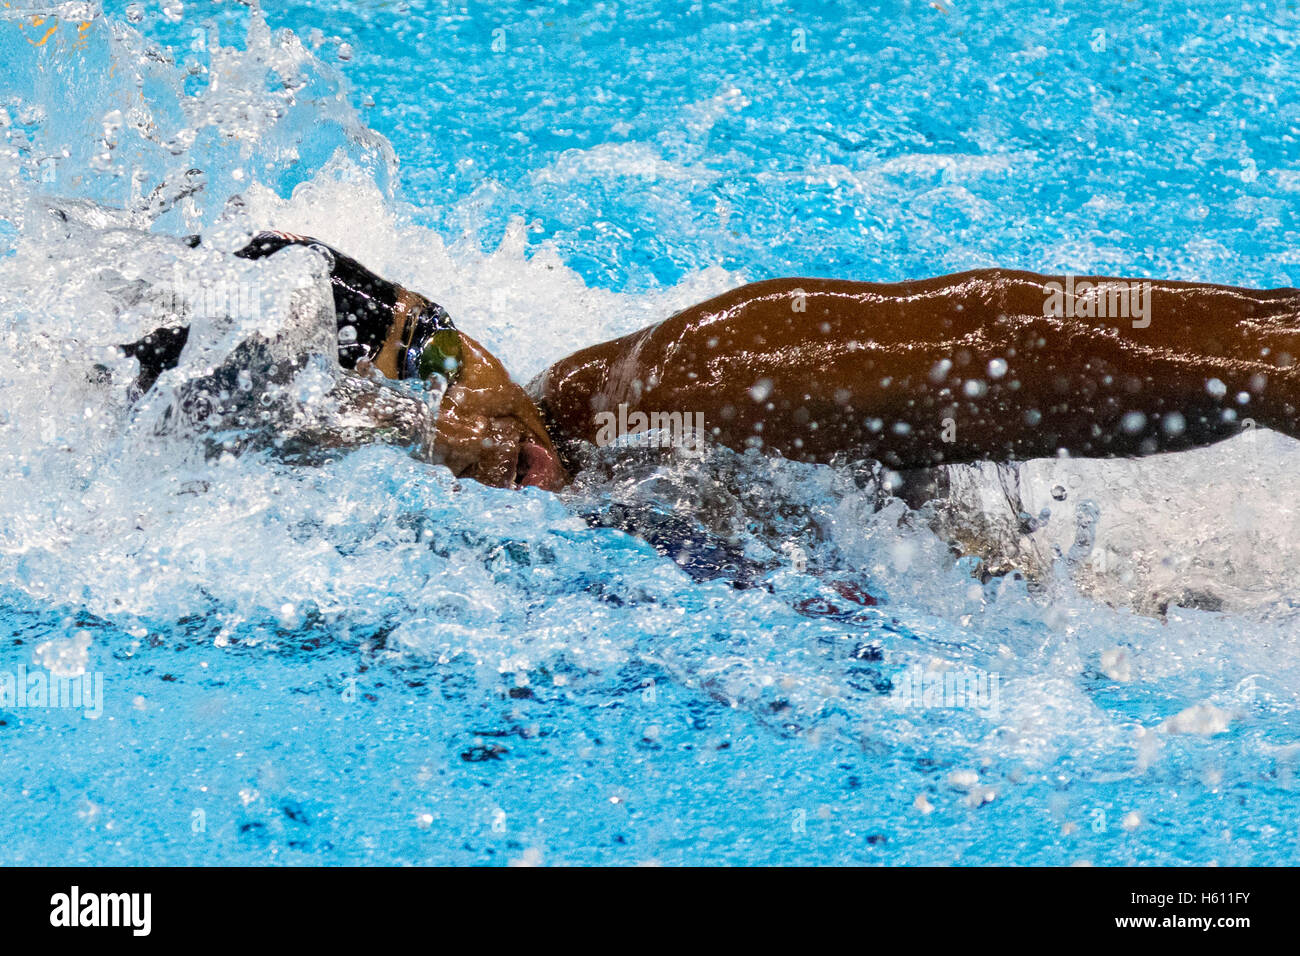 Simone Manuel (USA) competing in the Women's 4 x 100m Freestyle Relay final at the 2016 Olympic Summer Games. - Stock Image